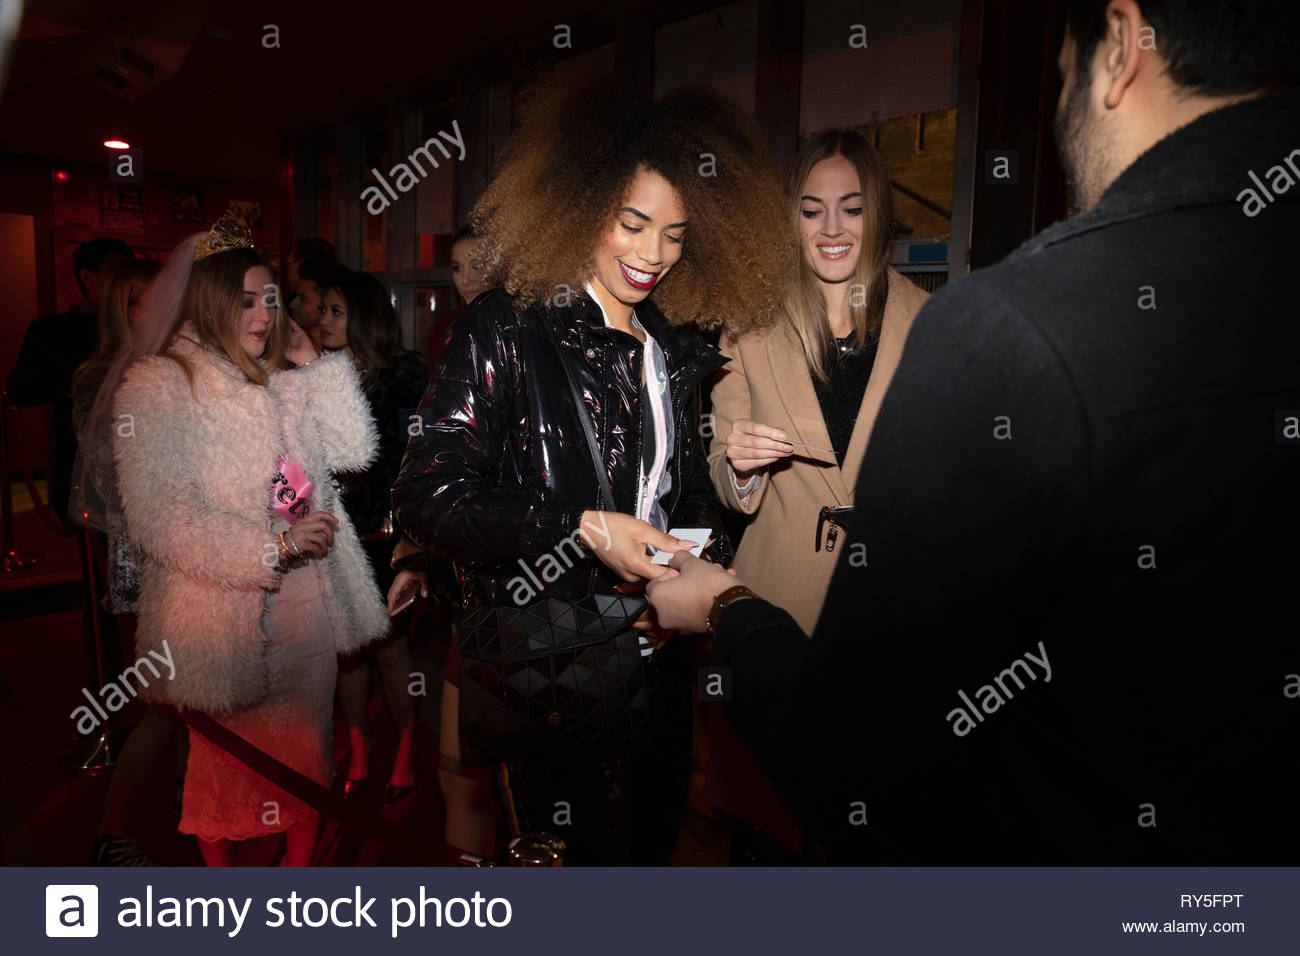 Women showing IDs to bouncer in nightclub queue - Stock Image